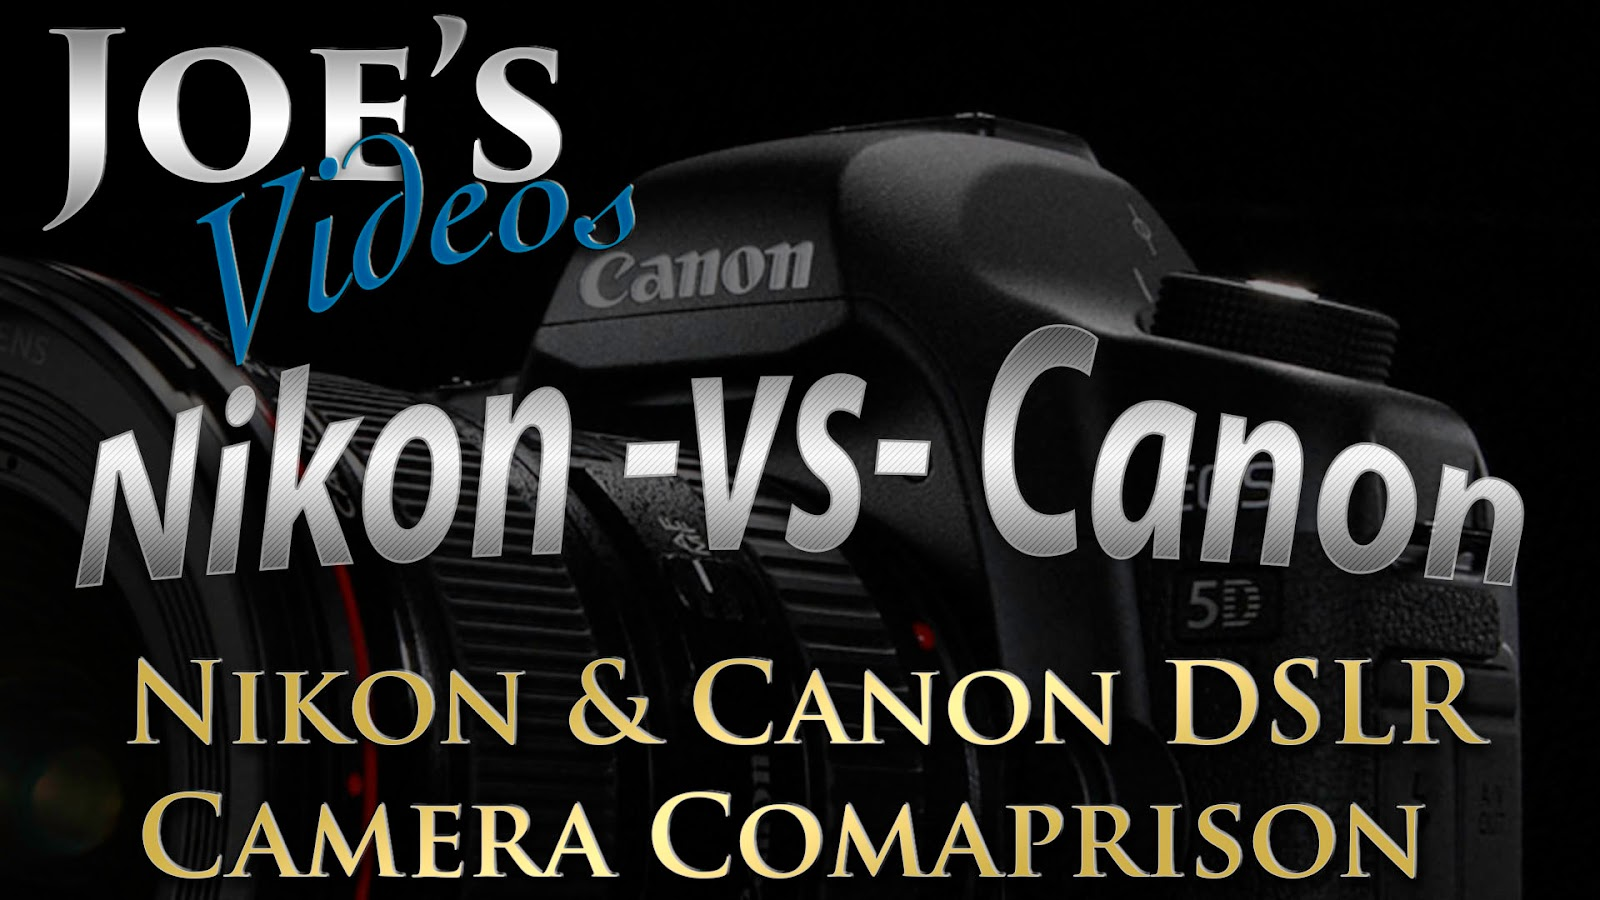 Nikon & Canon Digital SLR Camera Comparison, Which Model Matches Which? | Joe's Videos